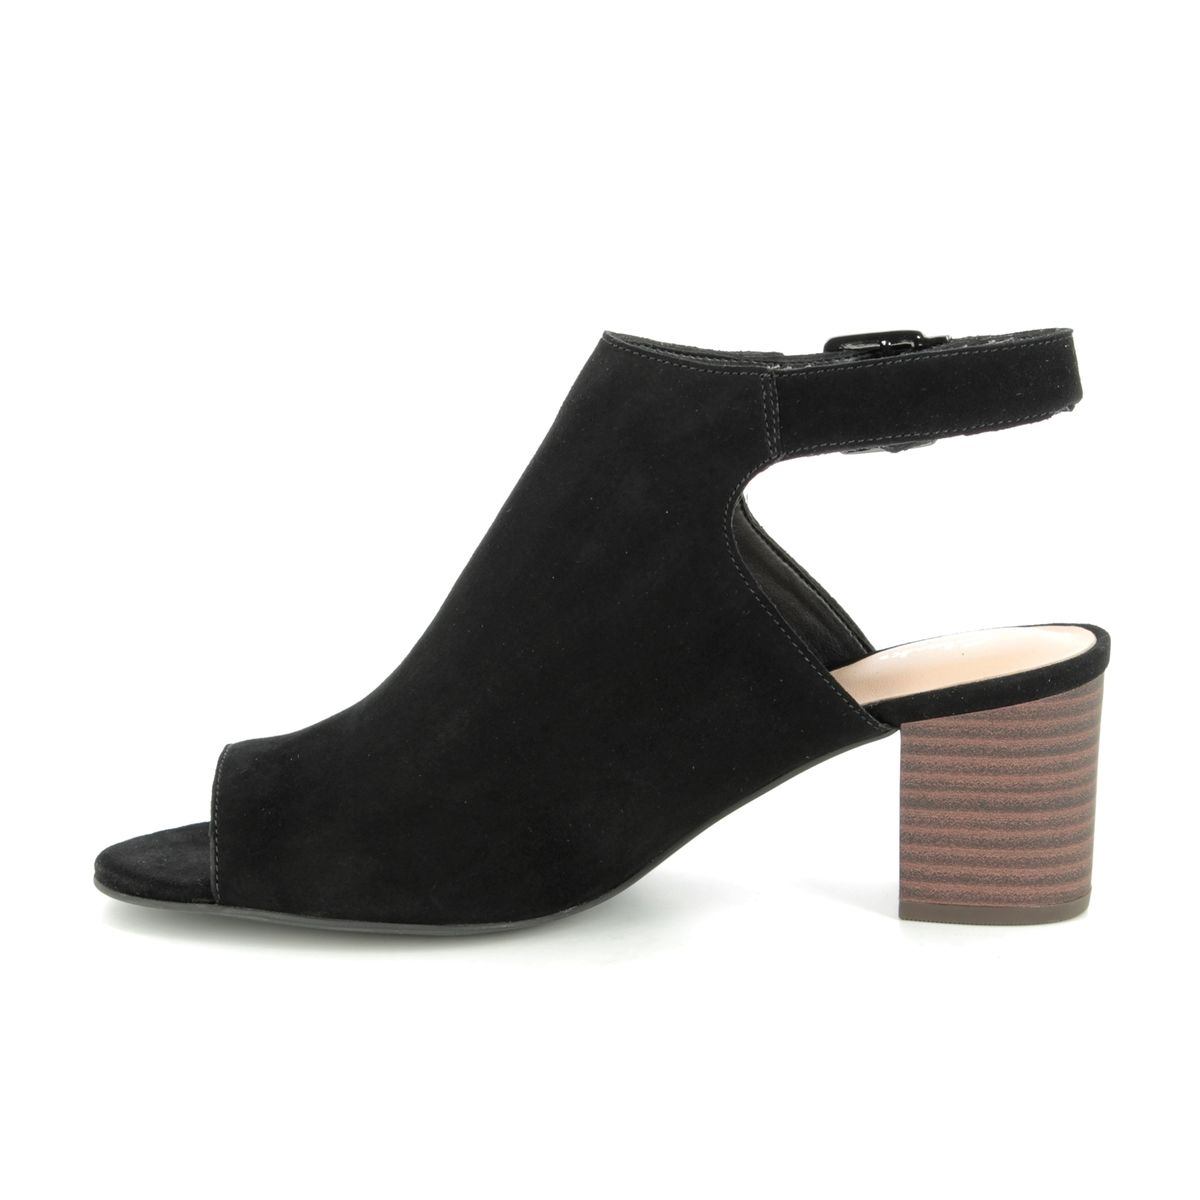 04a1c43b3991 Clarks Heeled Sandals - Black suede - 400994D DELORIA GIA